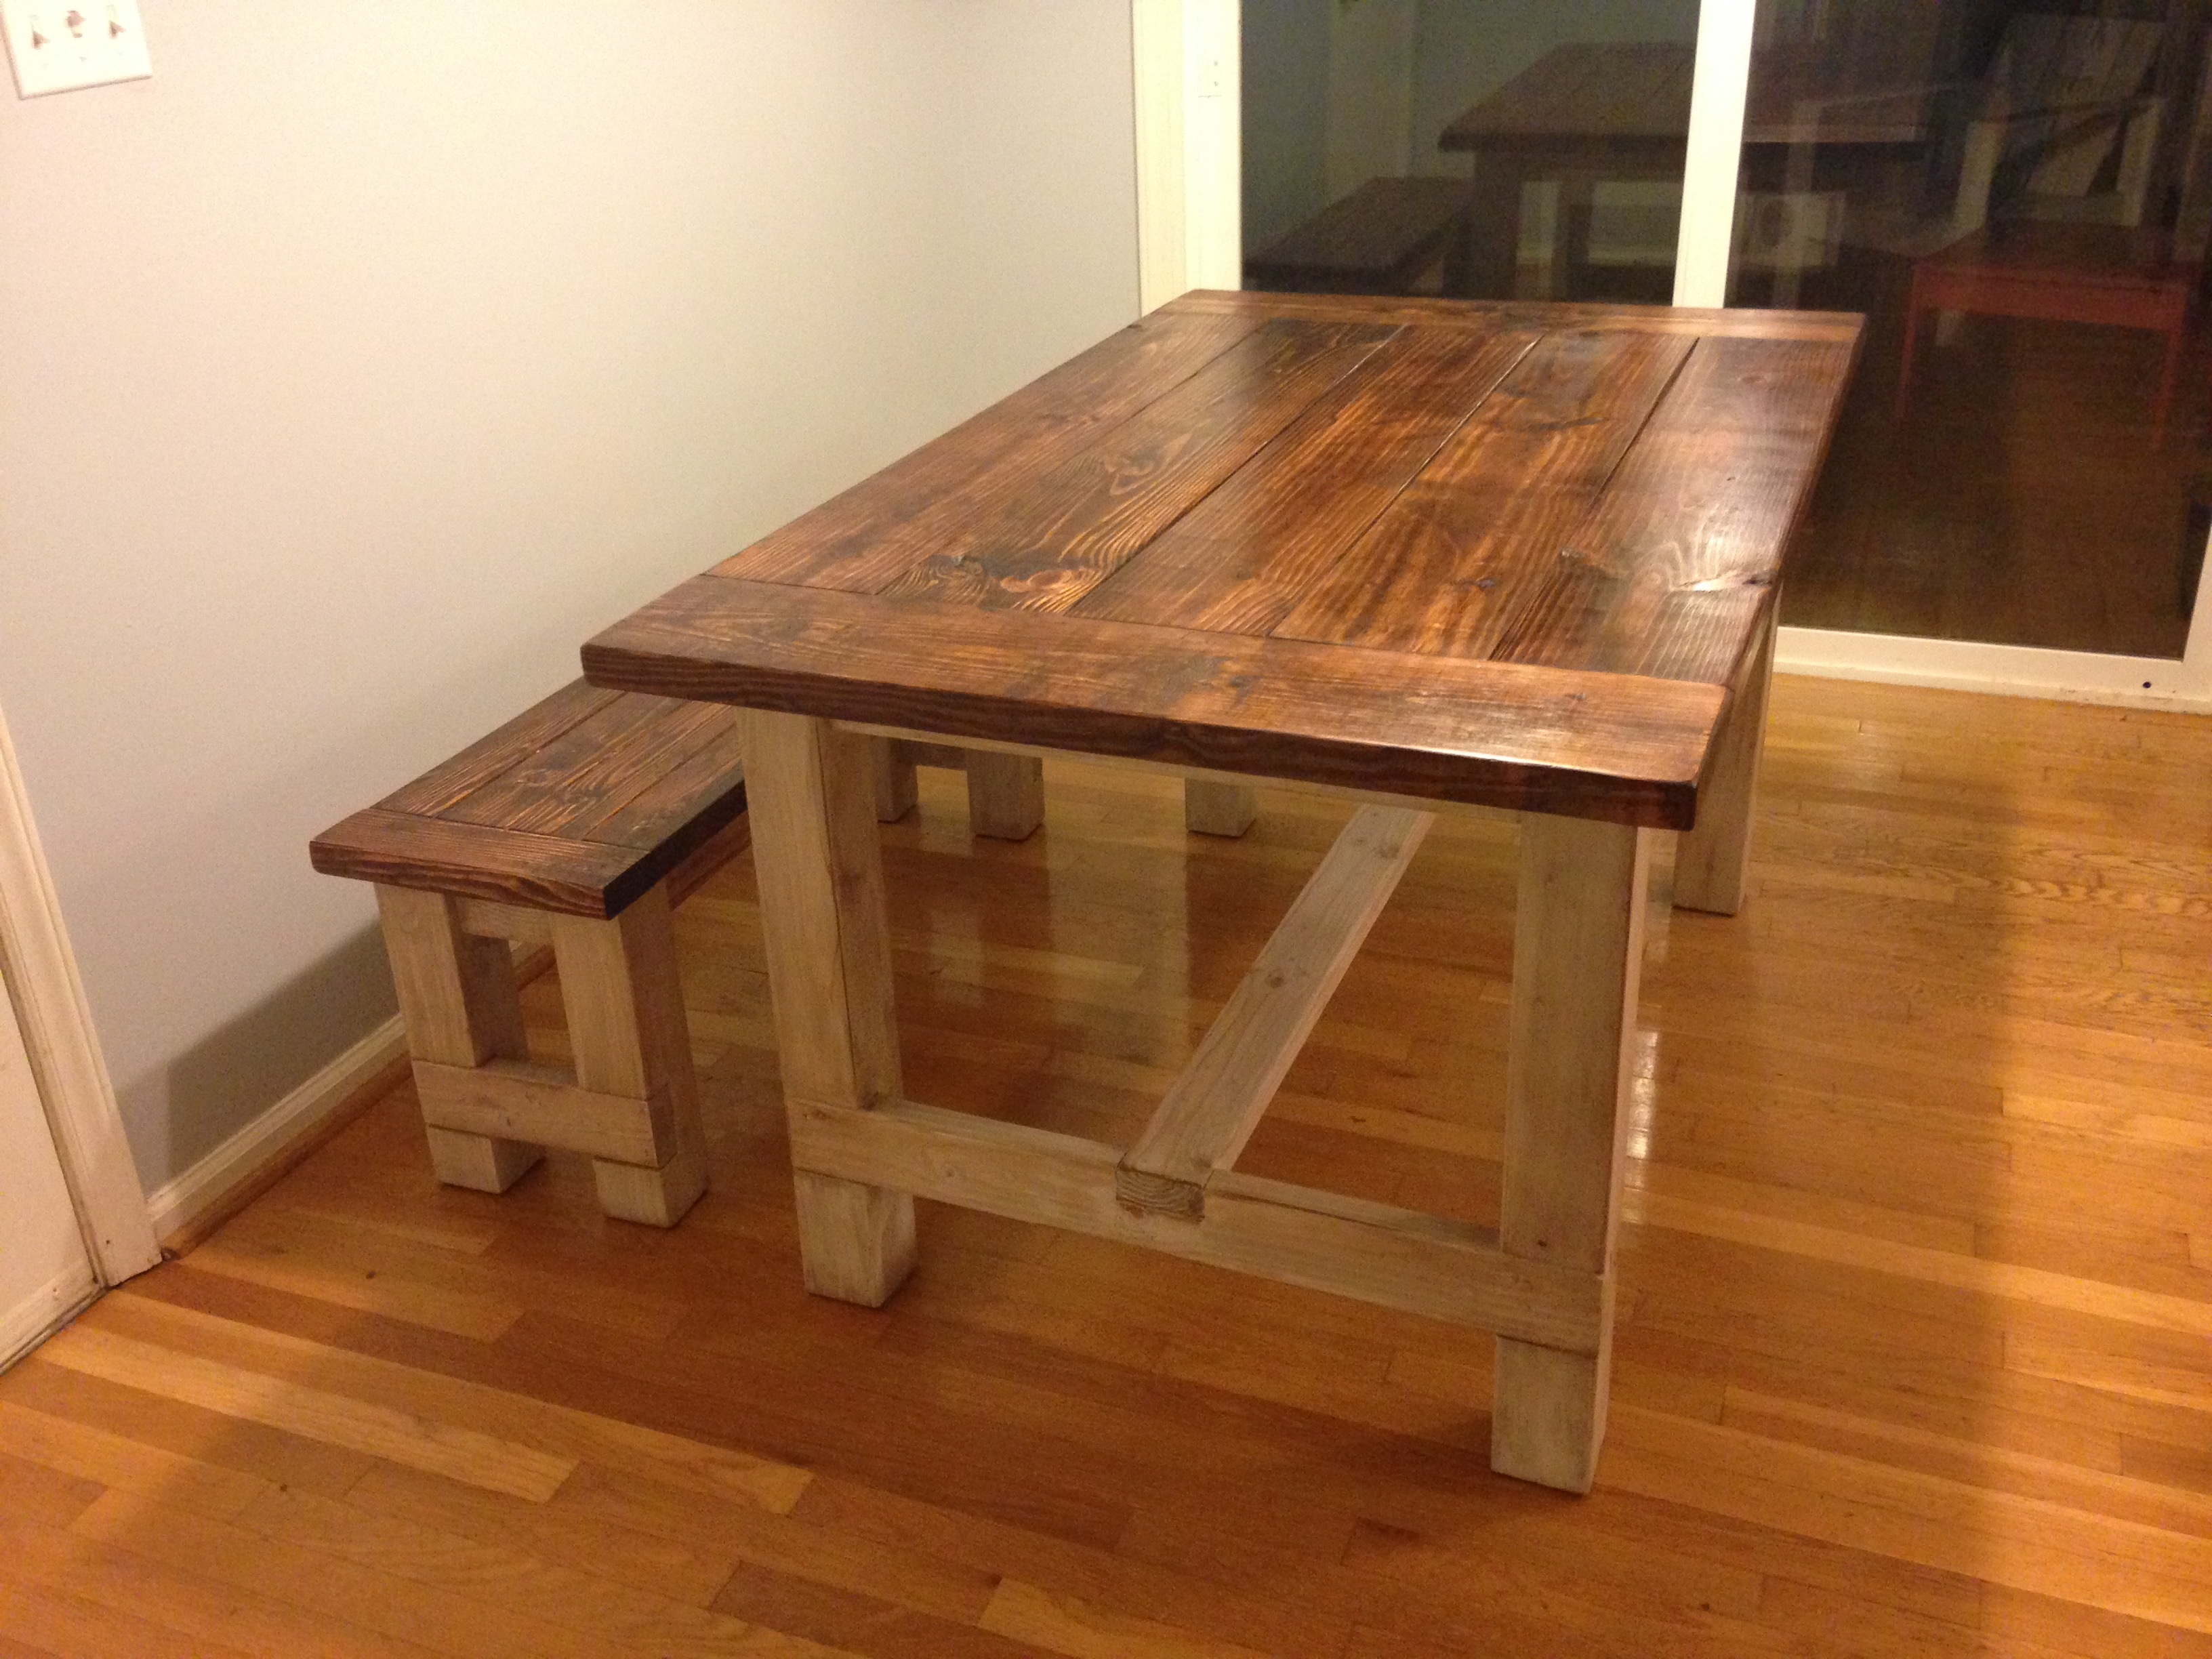 Ana White Smaller Farmhouse Table And Bench Diy Projects